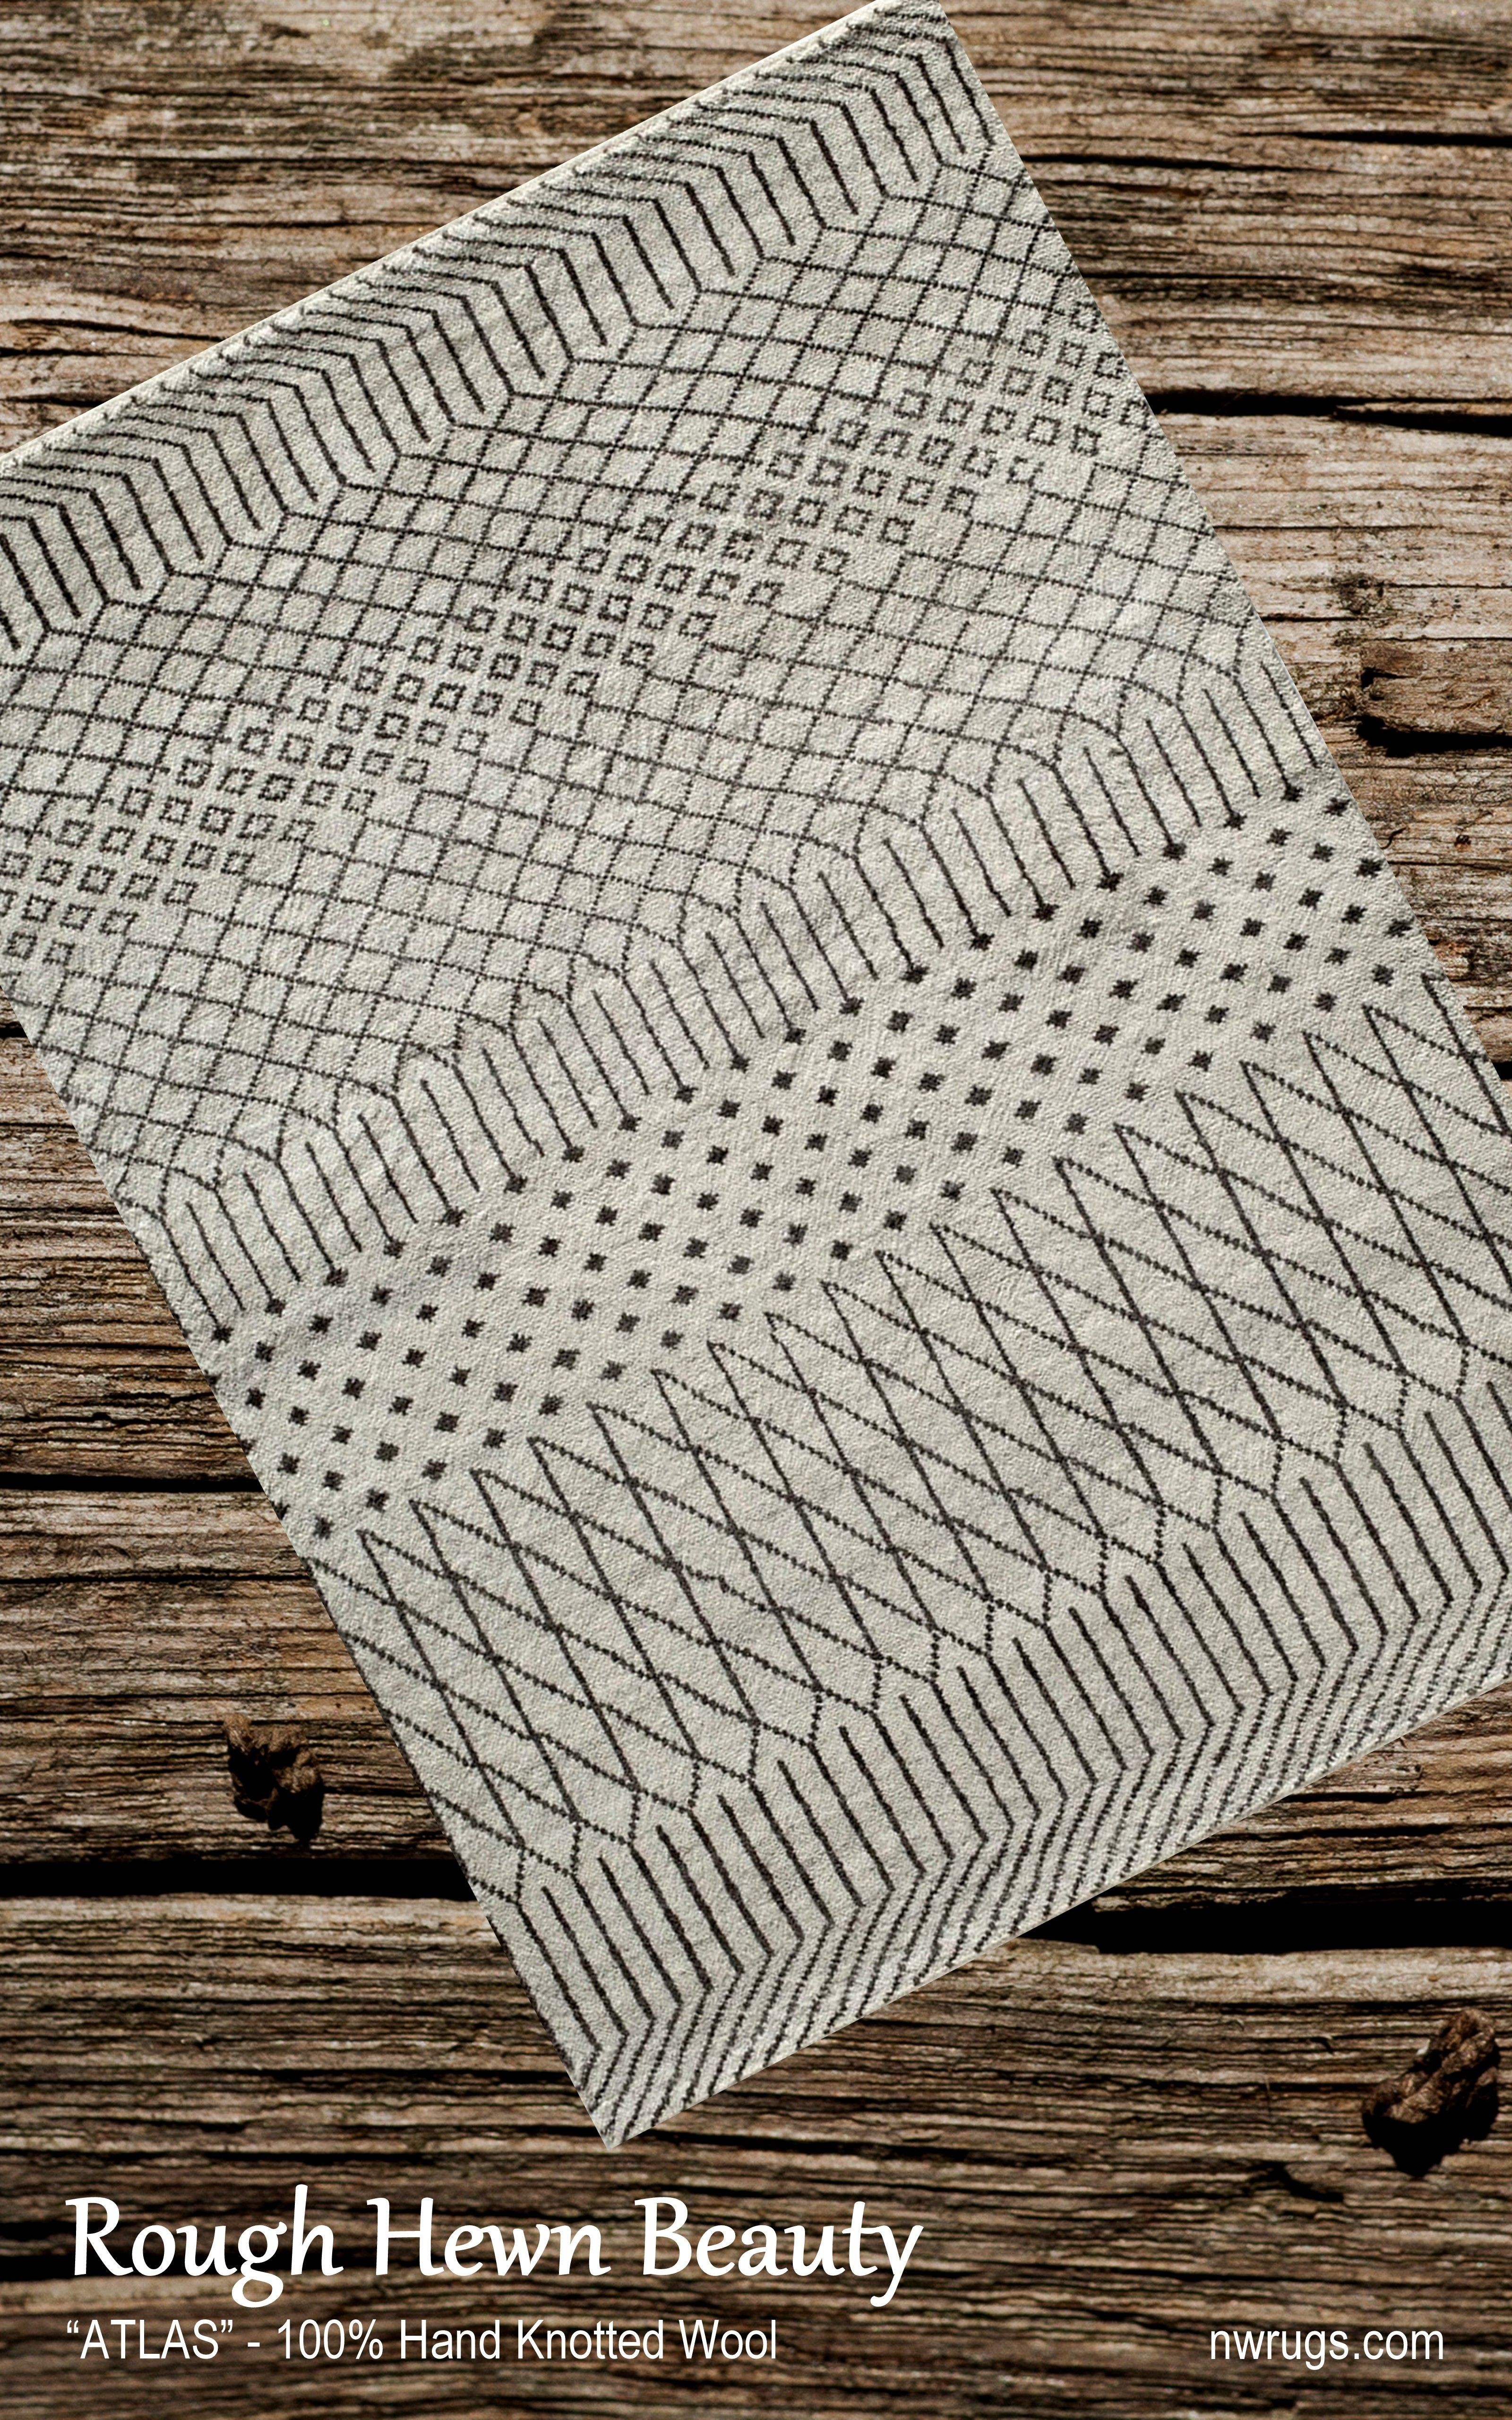 Atlas is inspired by gorgeous hand-crafted Moroccan rag-rugs. Maintaining the authentic texture of the nomadic craftsmanship combined with today's geometric styles and natural, understated color palette. Hand-knotted of 100% wool in India. #rugs #arearugs #moroccan #design #home #decorating #Portland #AgouraHills